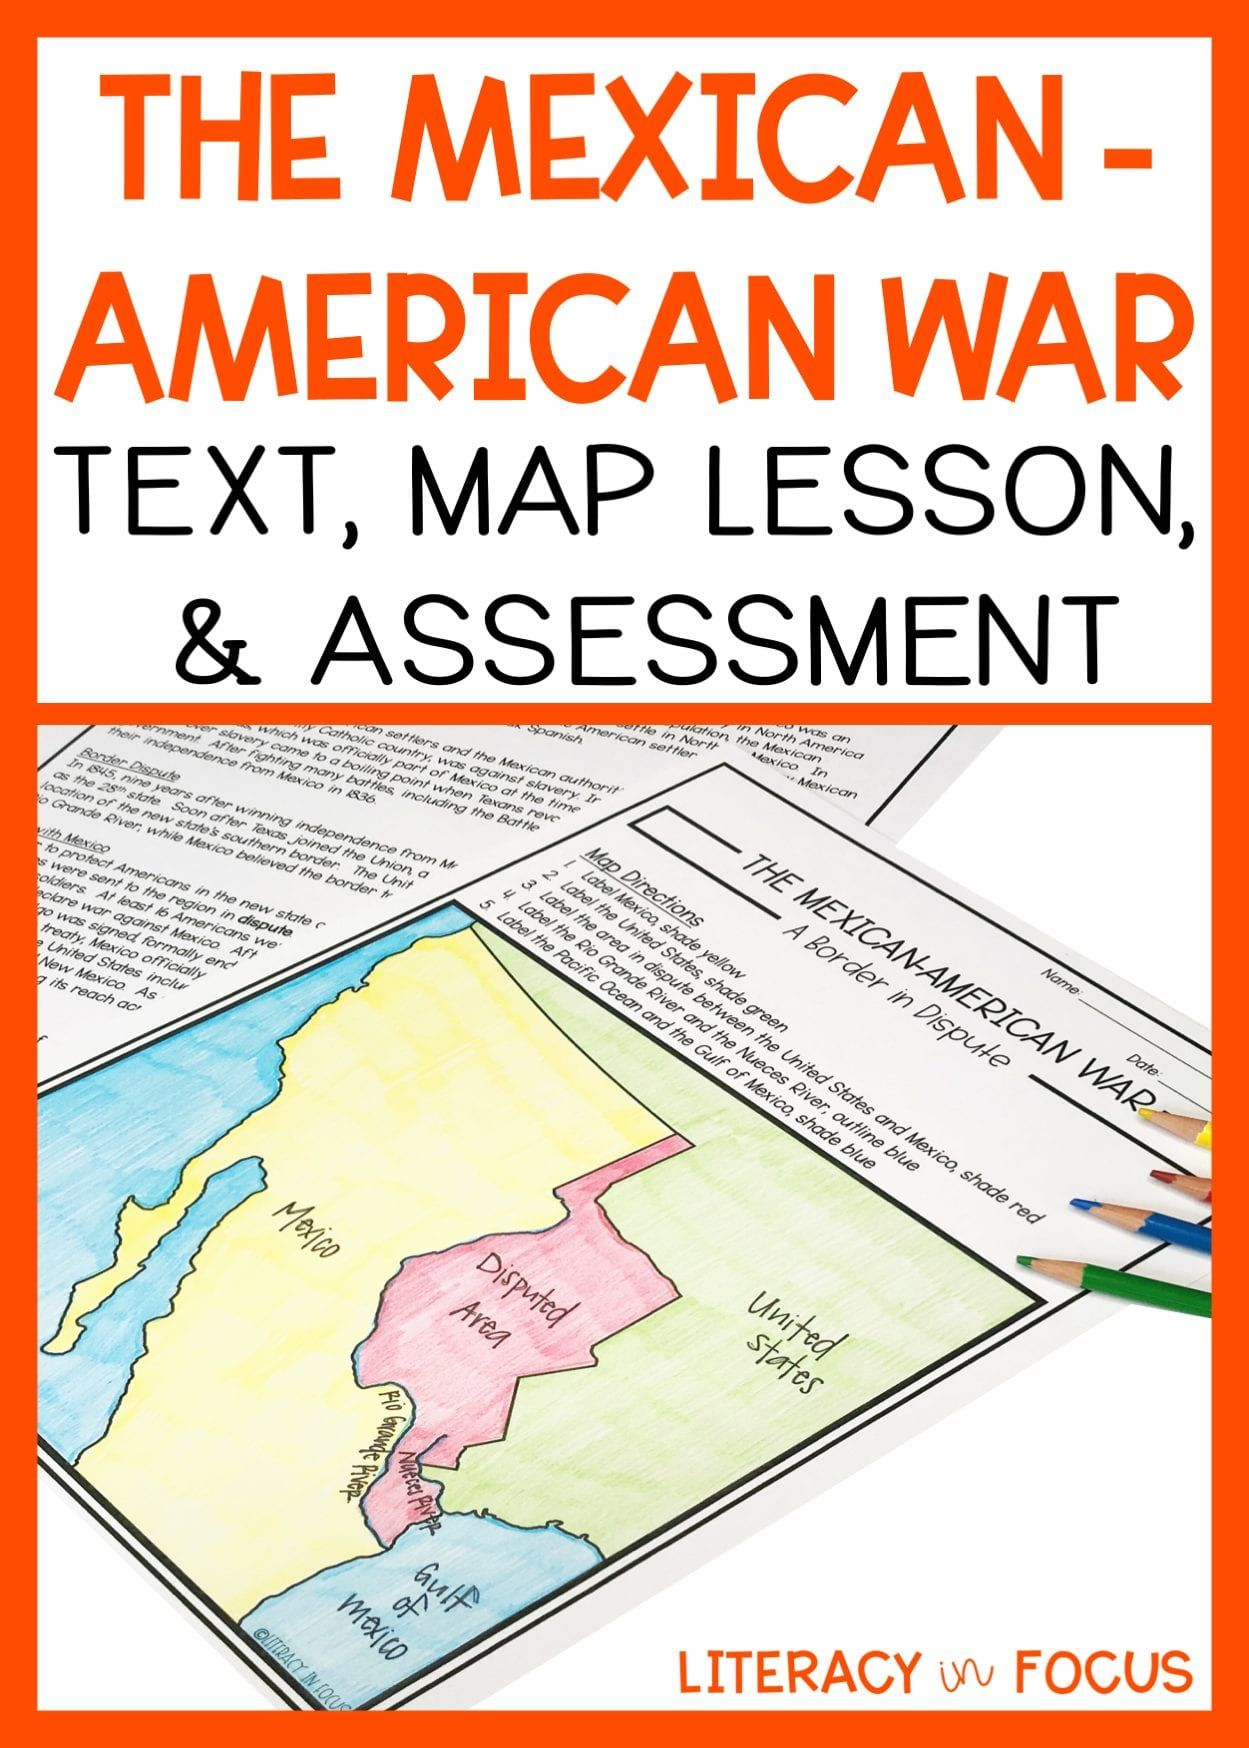 Mexican American War Lesson And Assessment With Images